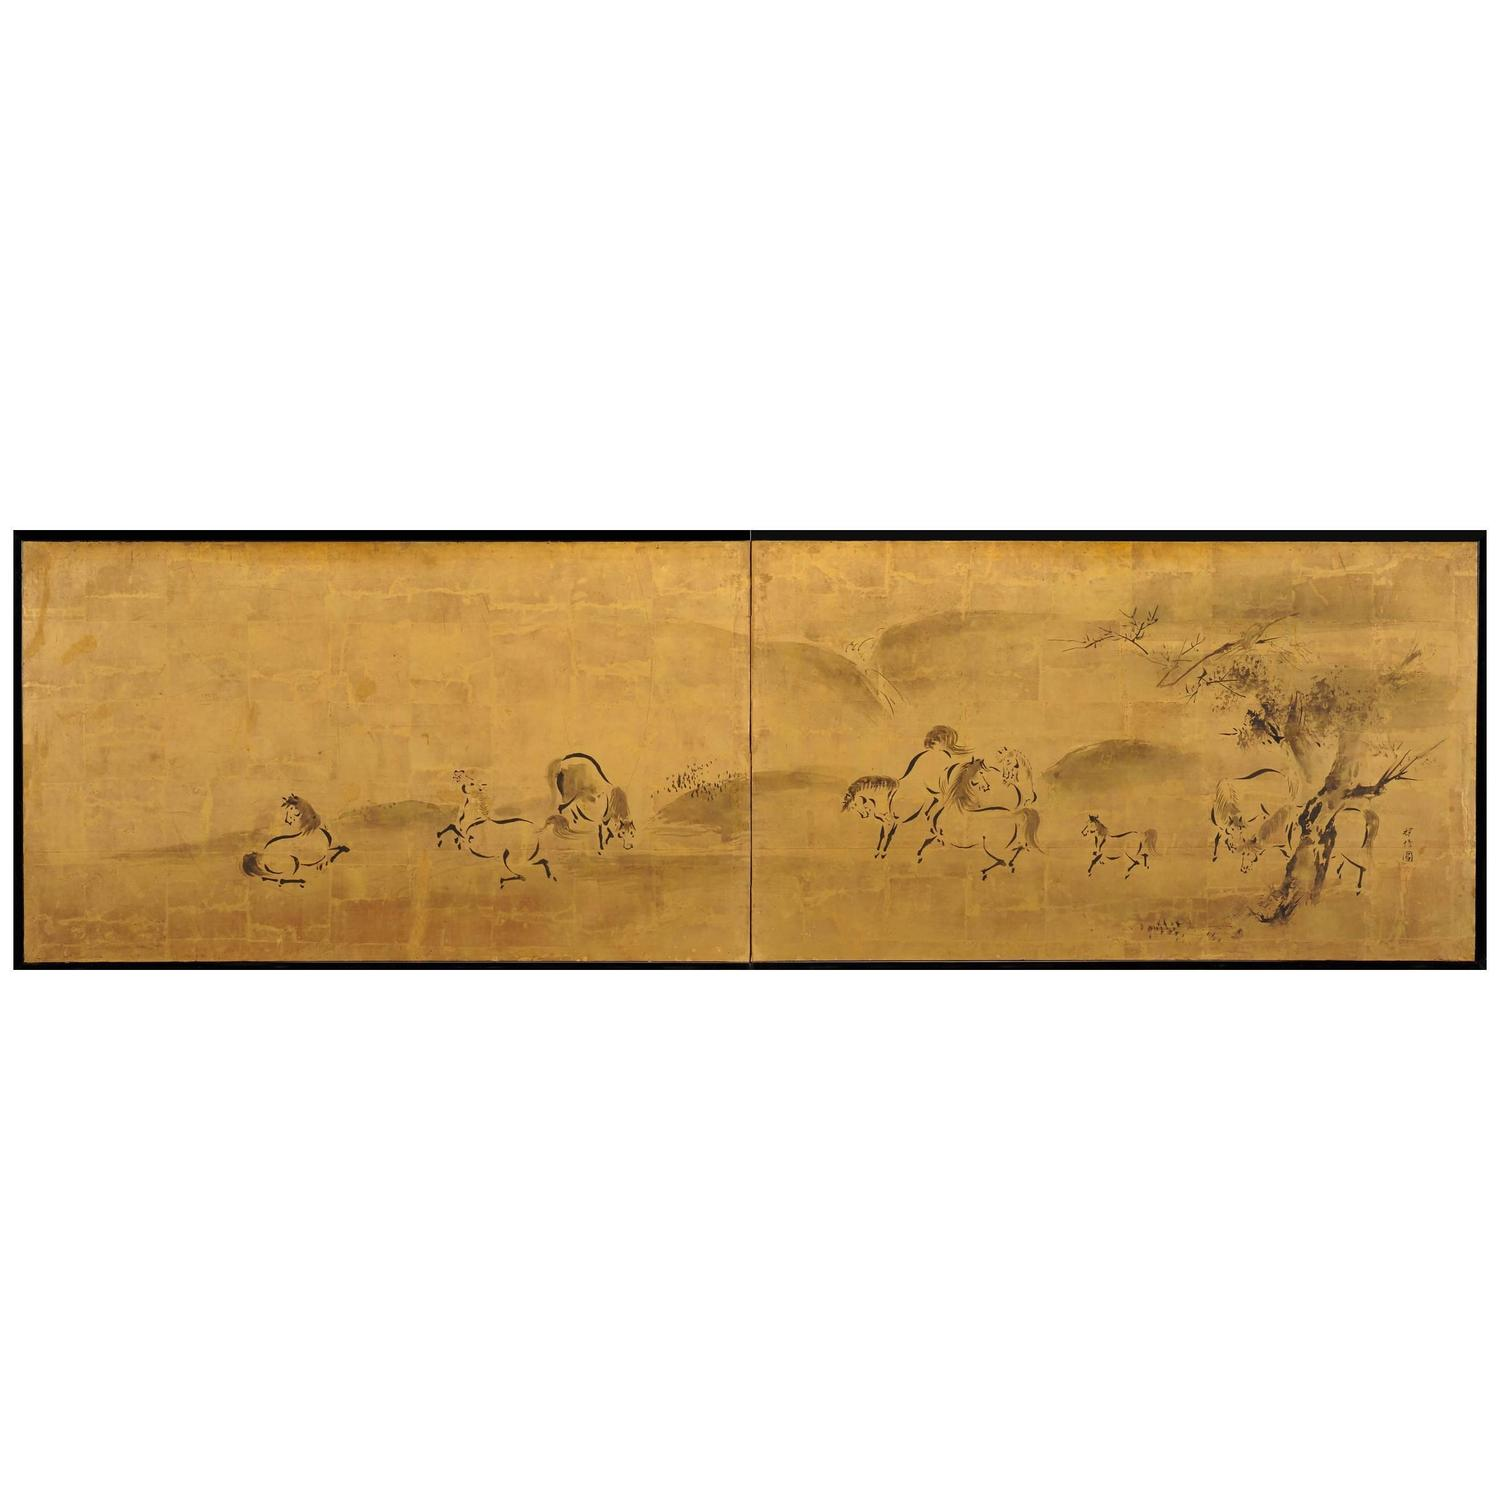 Antique japanese screens for sale - Kano Tanshin 1653 1718 Horses Japanese Folding Screen Painting